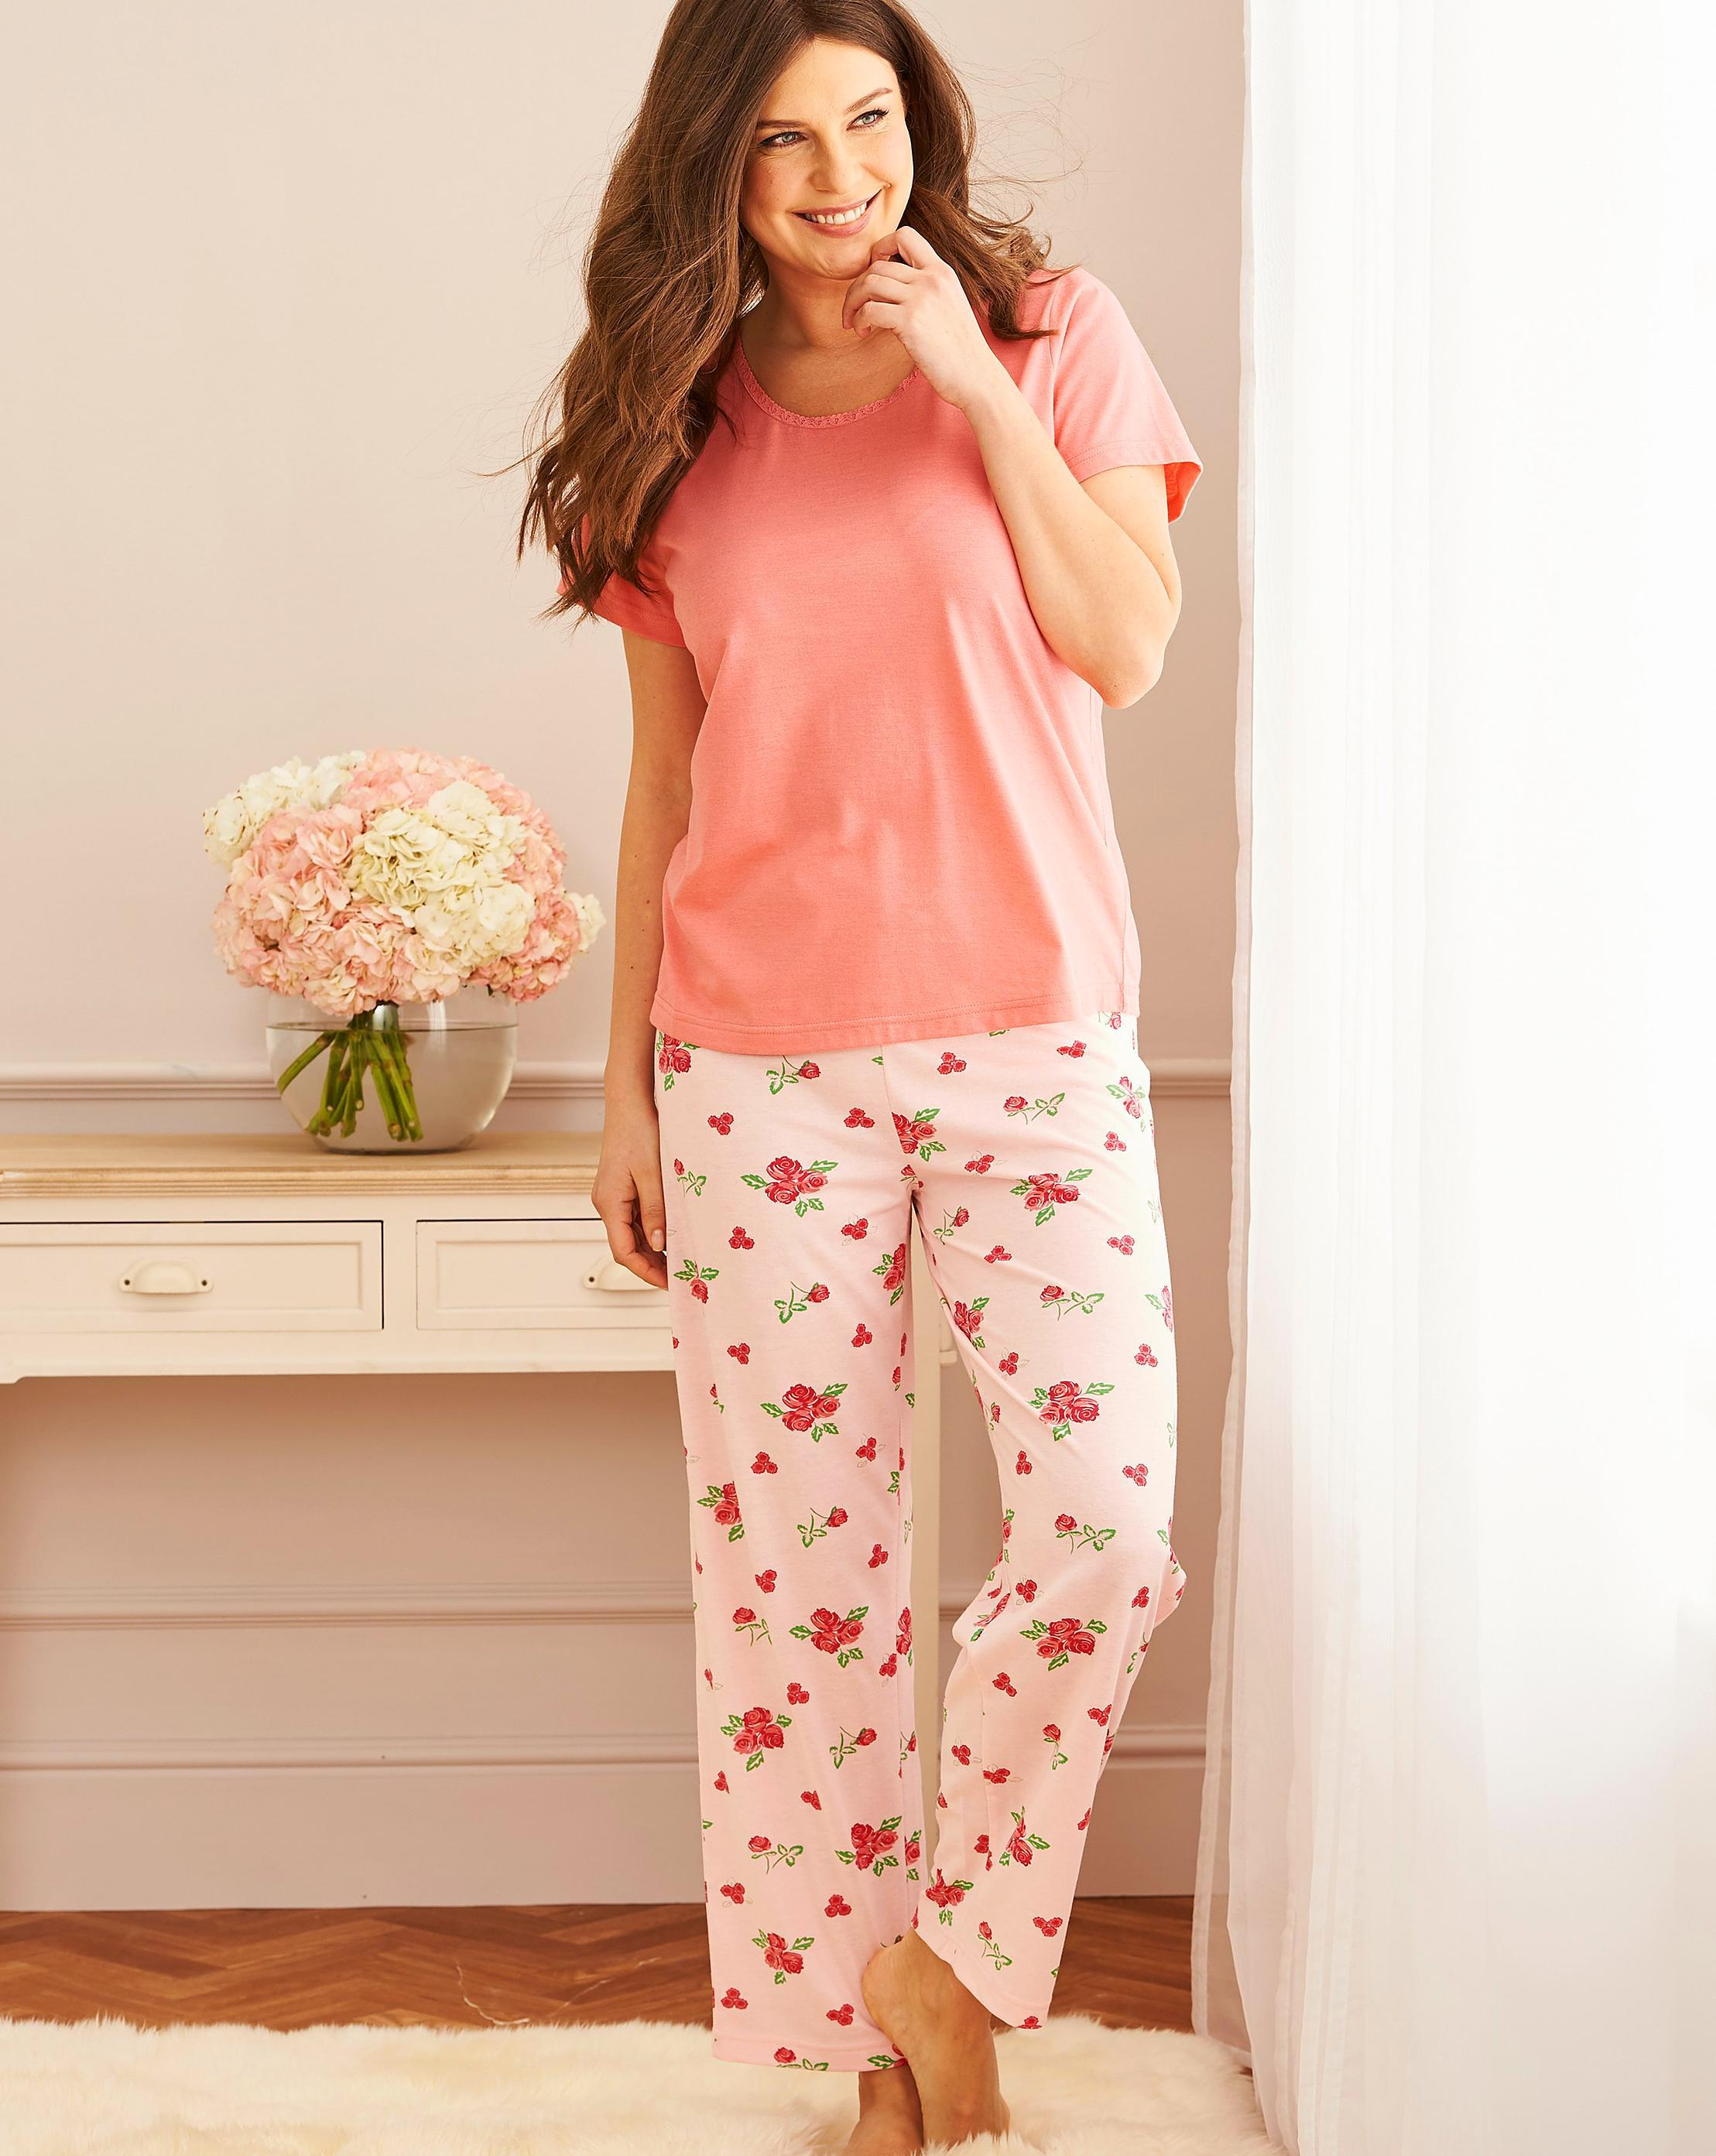 6cda73314f75 Lyst - Simply Be Pretty Secrets Short Sleeve Pajama Set in Pink